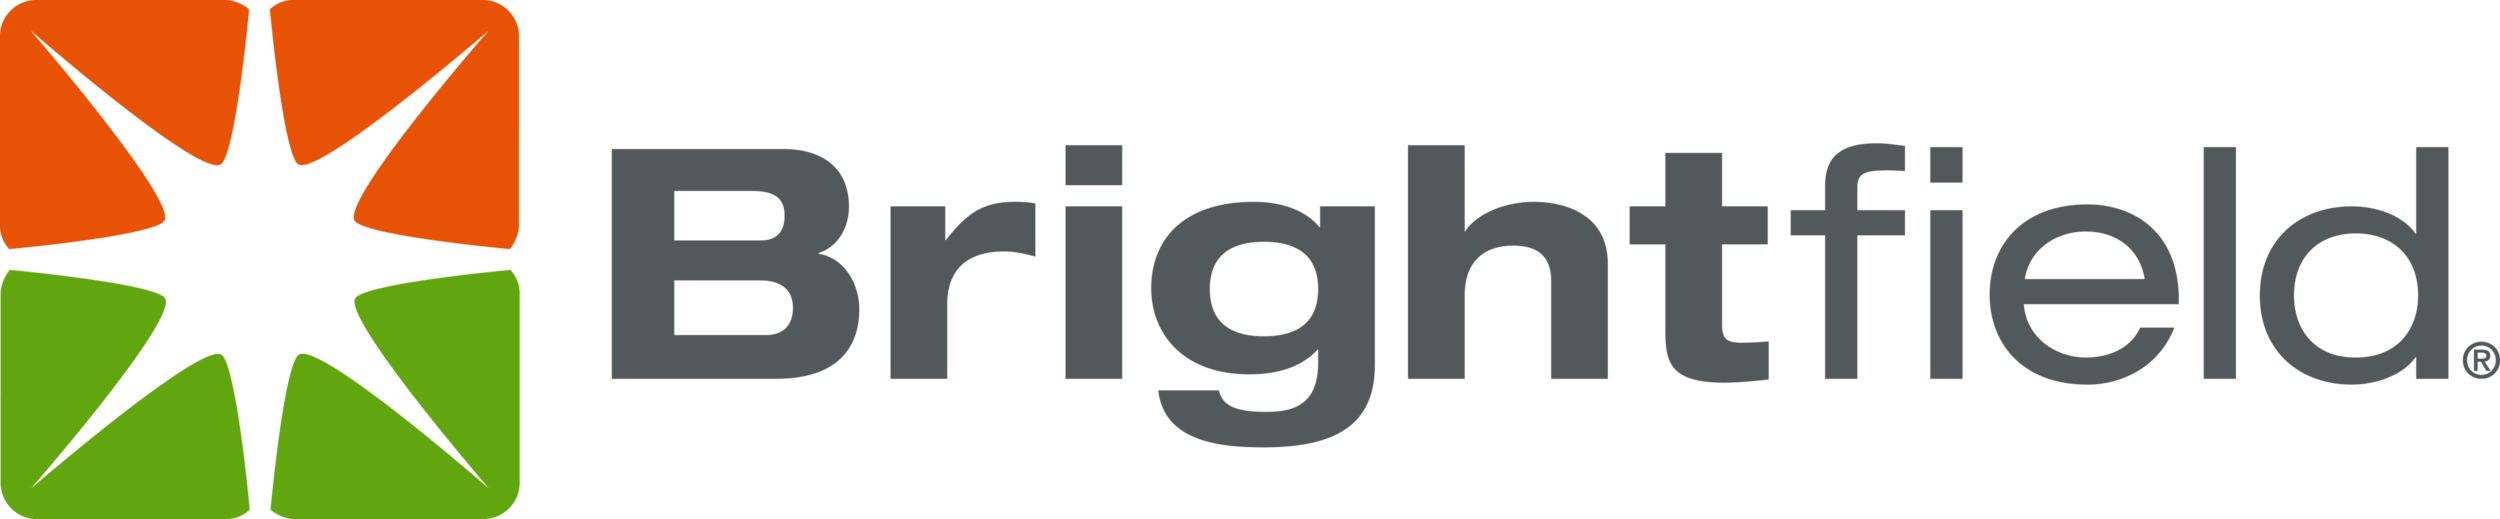 BT-604-04-01_Brightfield logo horizontal_fnl (1).png